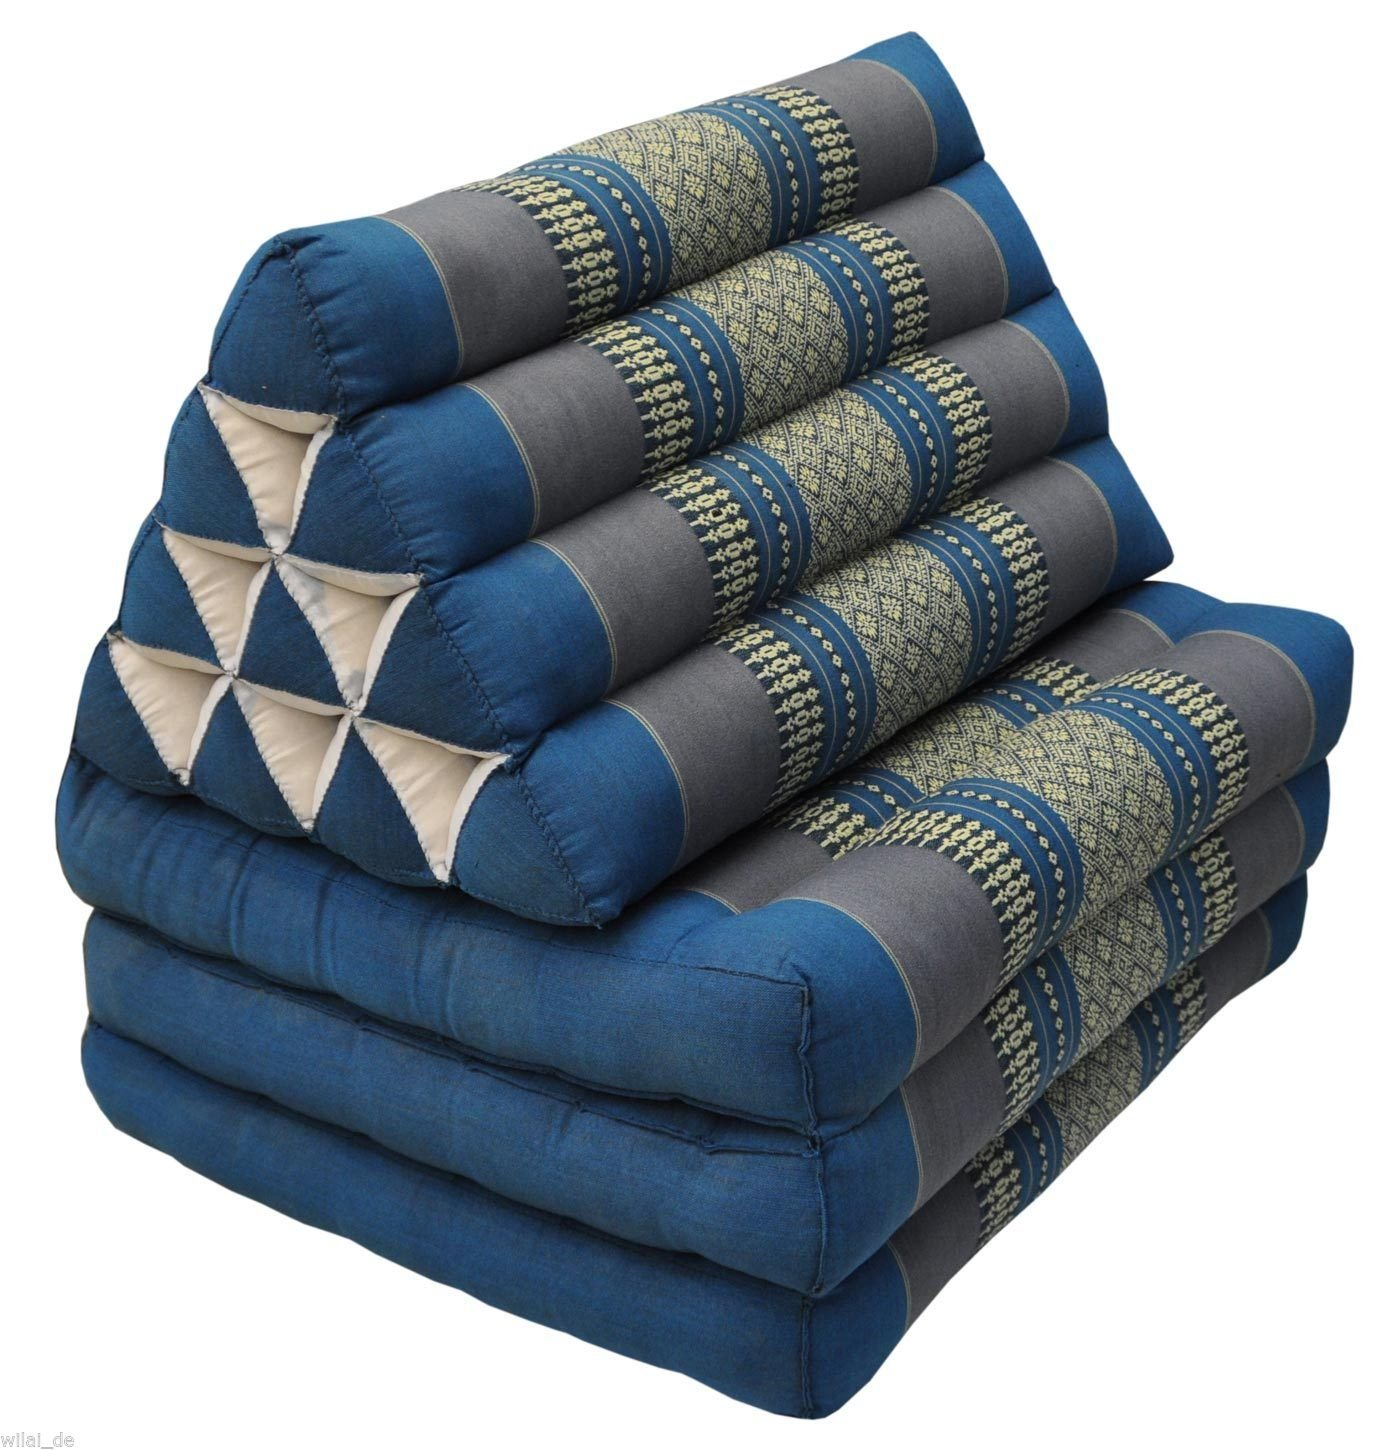 Tungyashop@thai Traditional Cushion 67x21x3 Inches Kapok Mattress (Sky Blue, 3 Fold) by thai otop